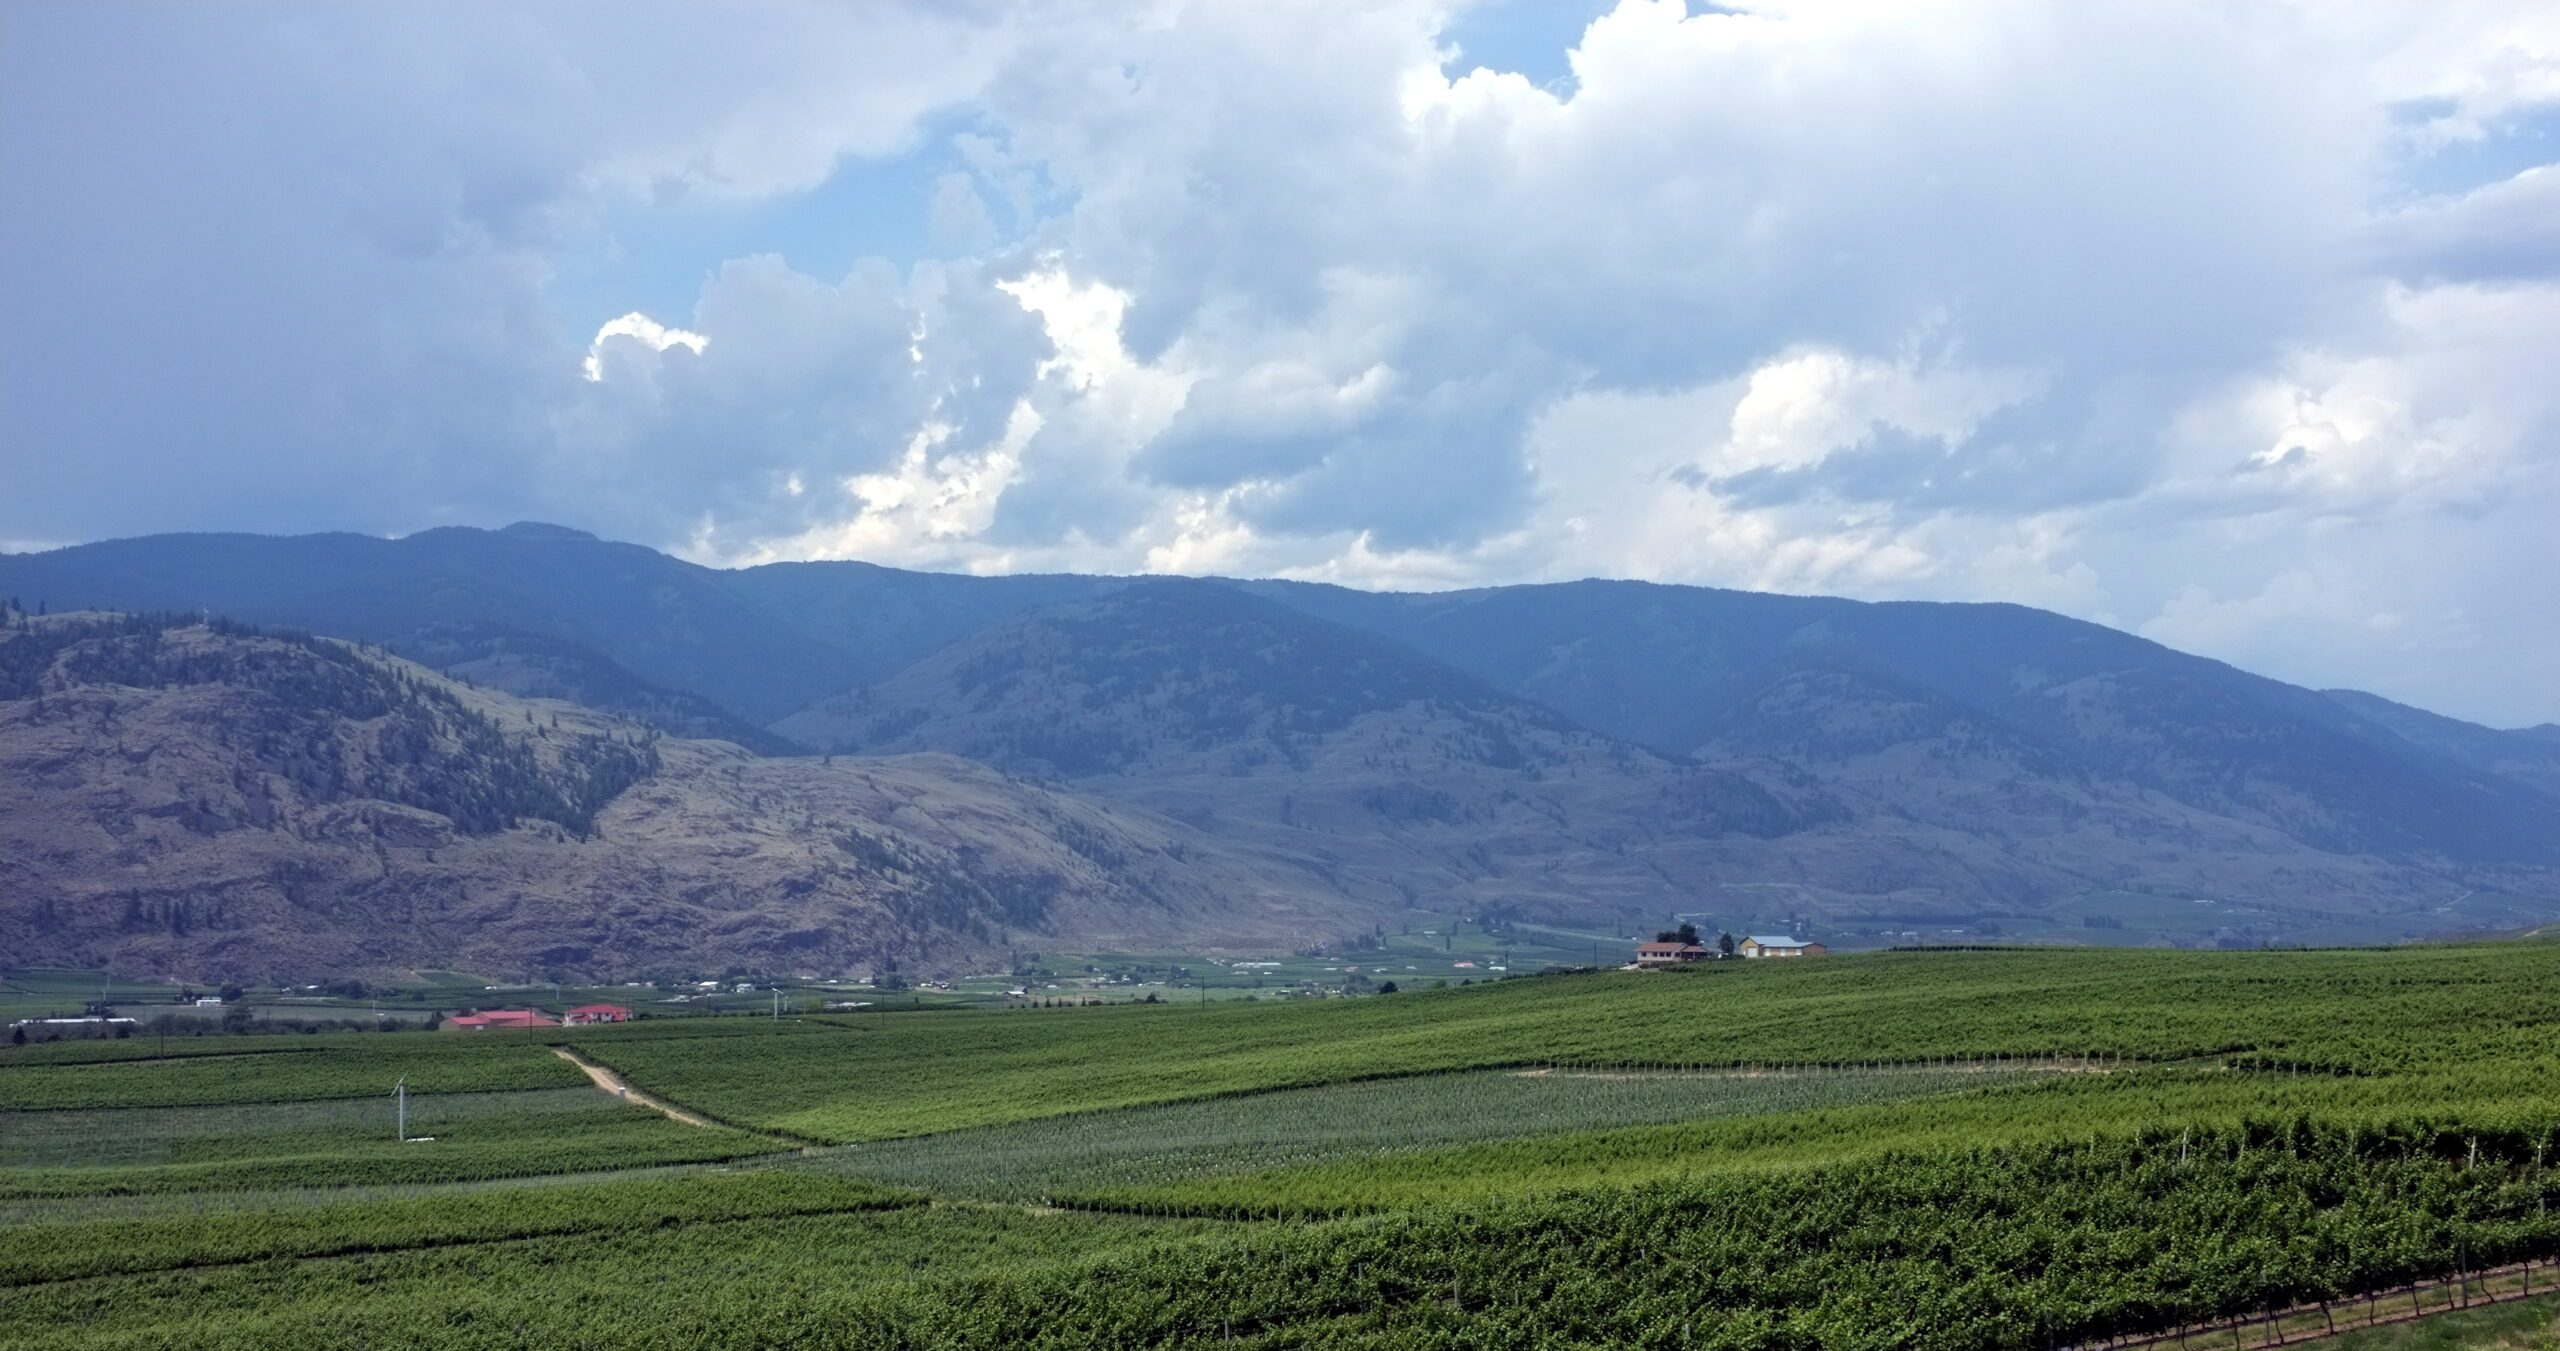 The Okanagan Lifestyle - What to Expect? 4